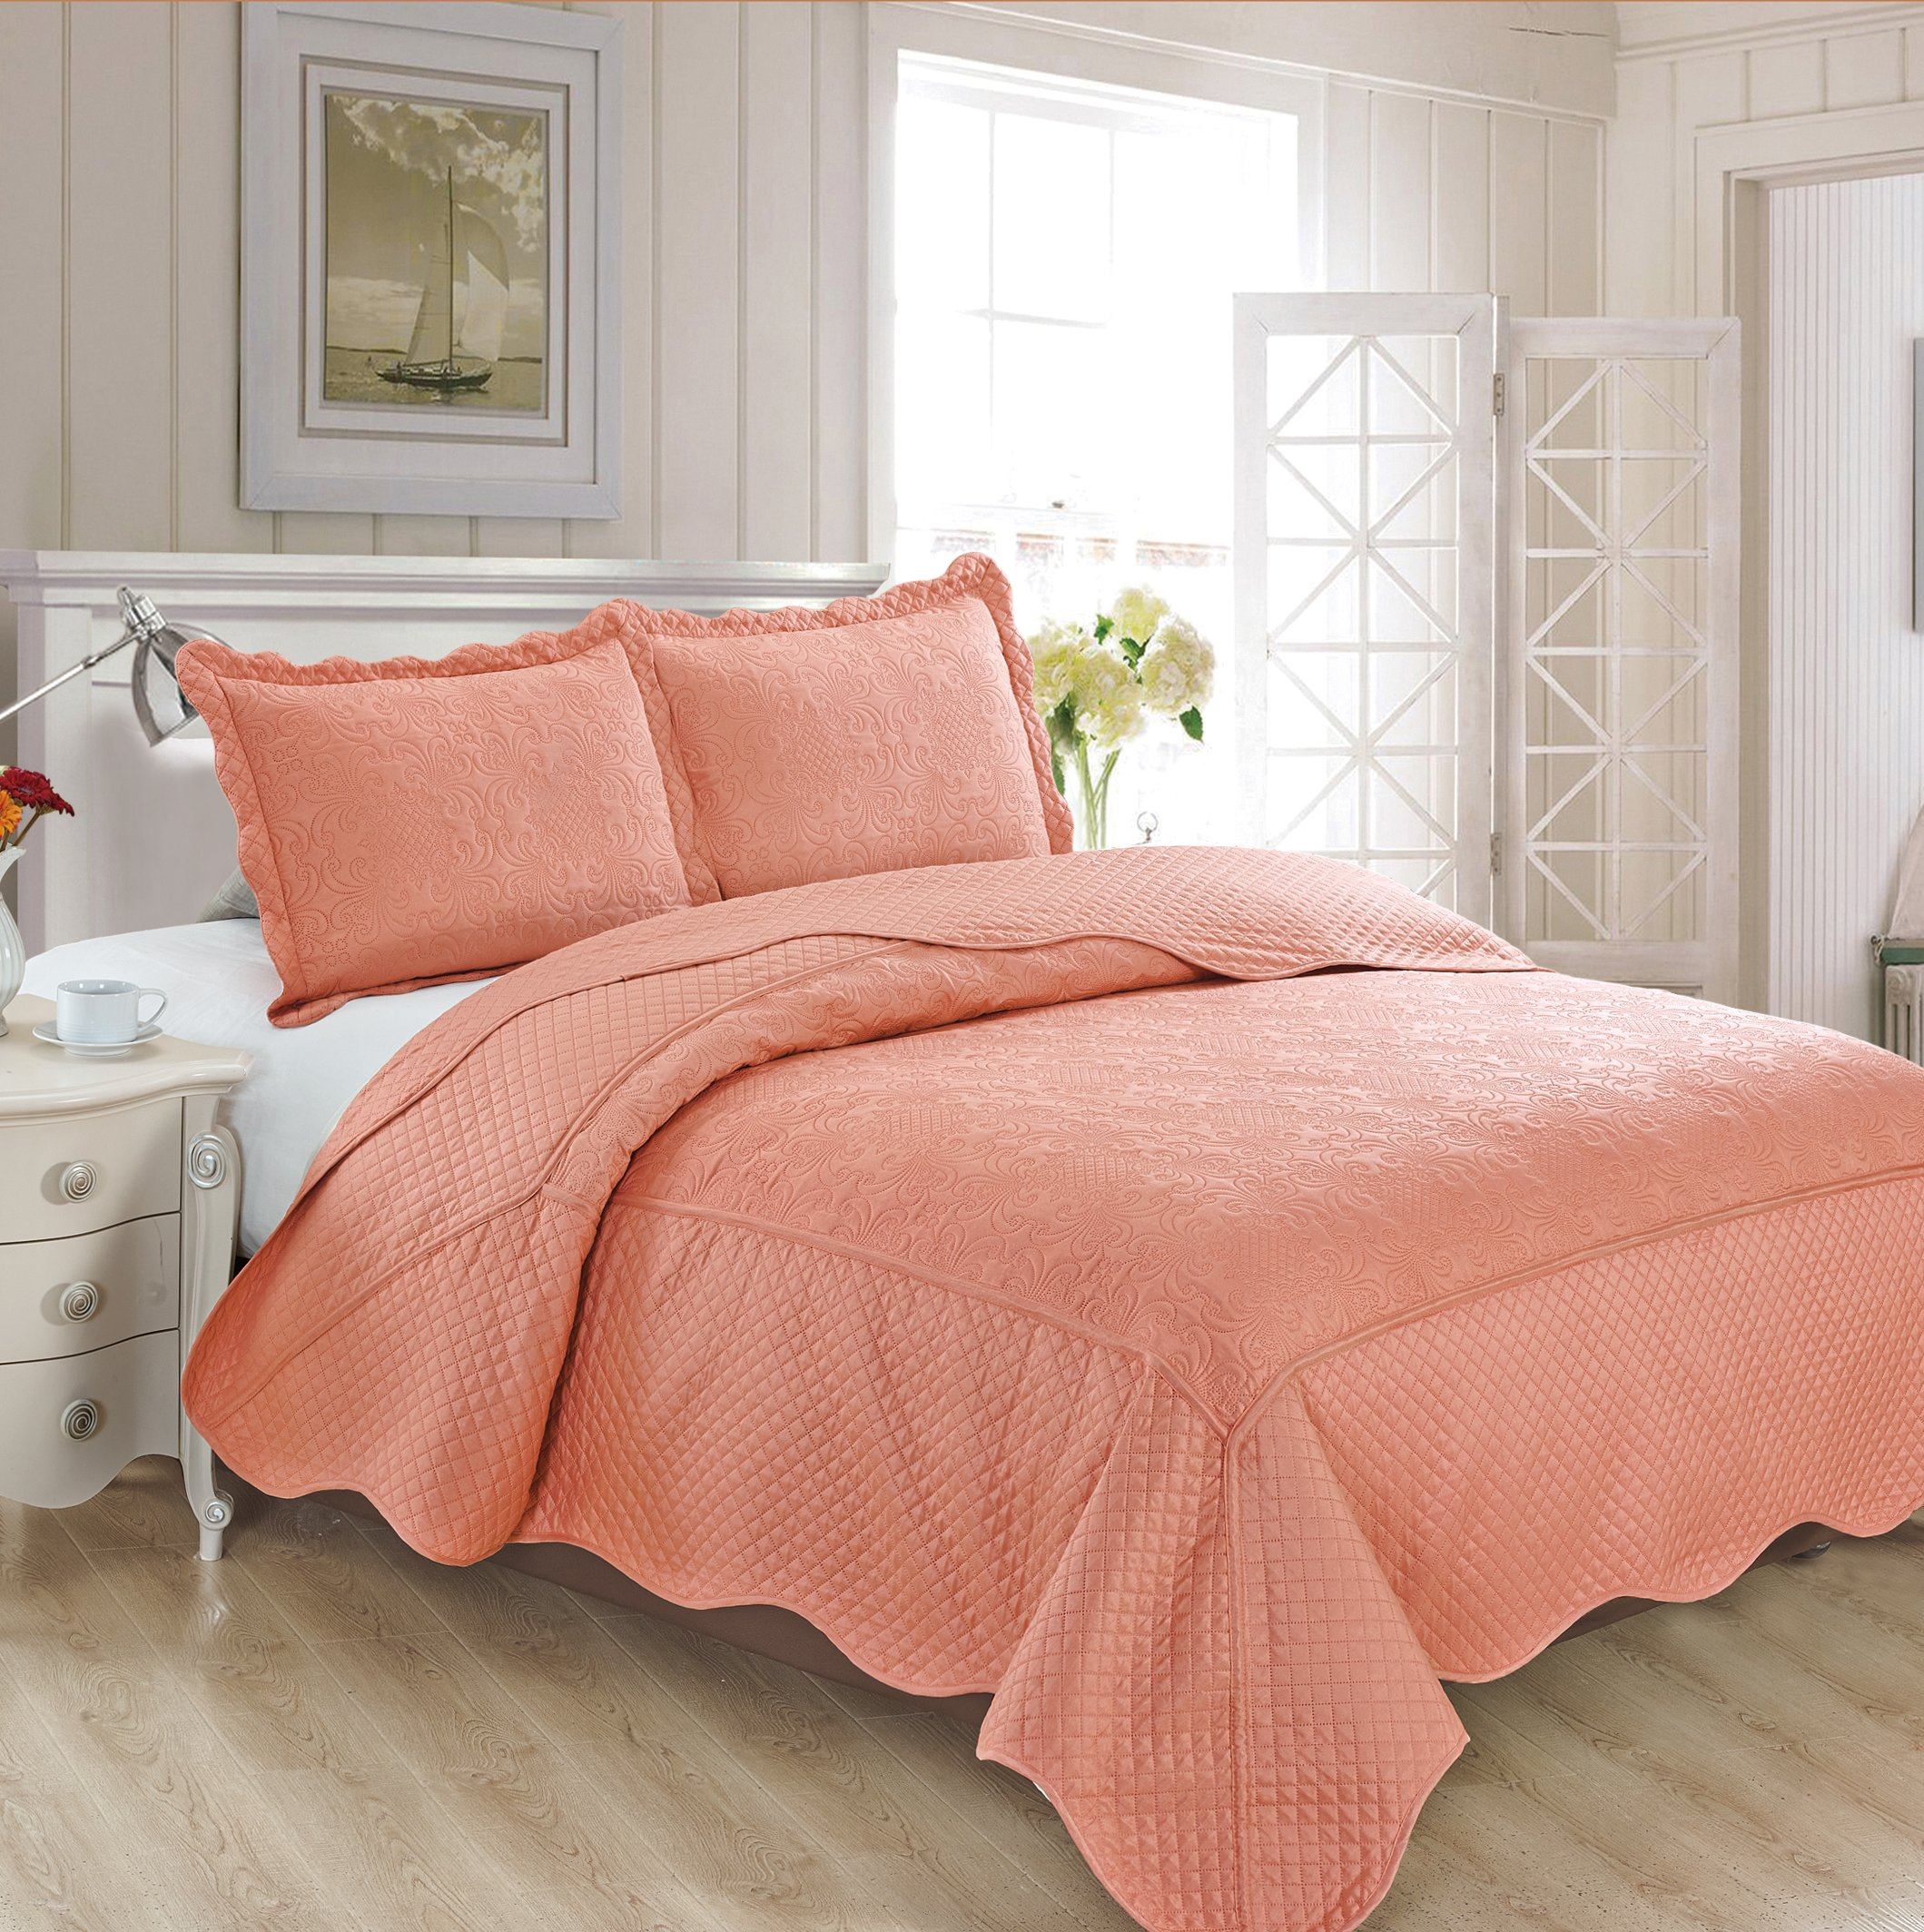 Fancy Collection 3pc Luxury Bedspread Coverlet Embossed Bed Cover Solid New Over Size #Veronica (Coral, Full/Queen)